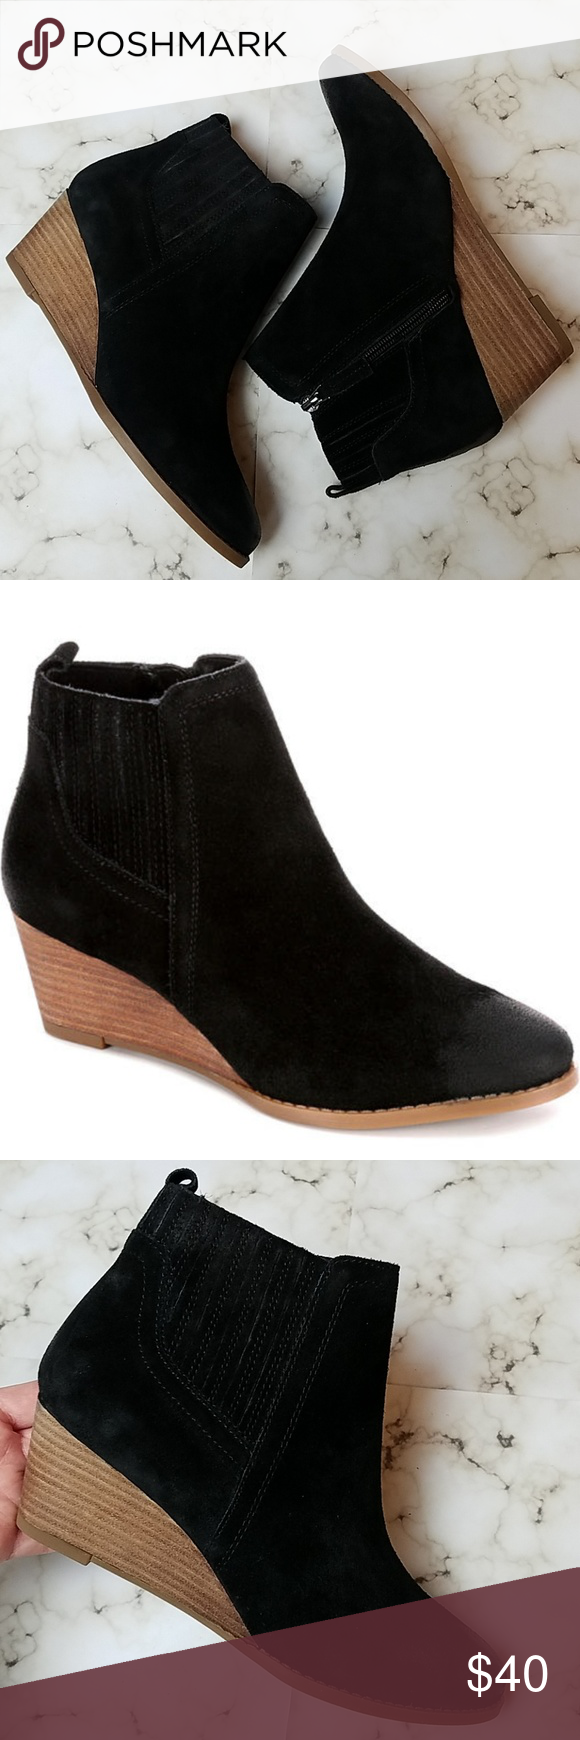 21f752c015da Franco Sarto  Wayra  Wedge Bootie -Super cute stacked wedge ankle bootie by  Franco